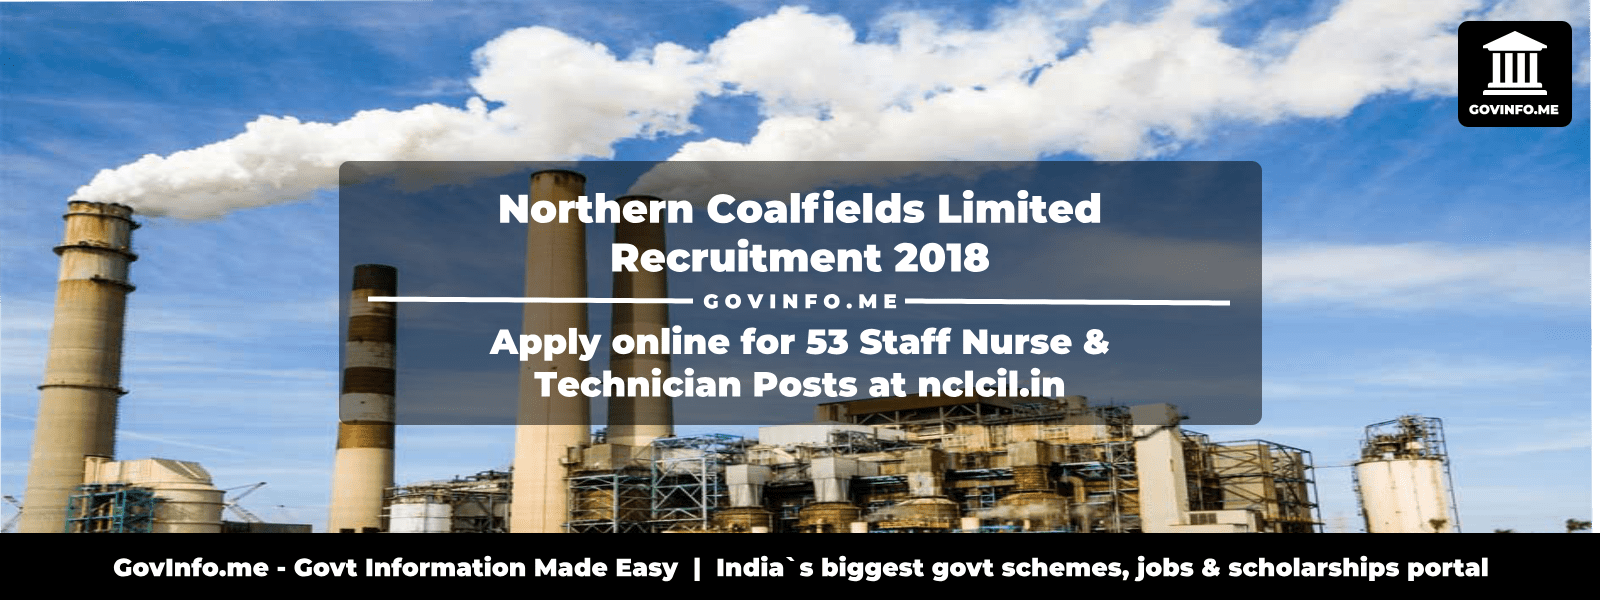 Northern Coalfields Limited Recruitment 2018: Apply online